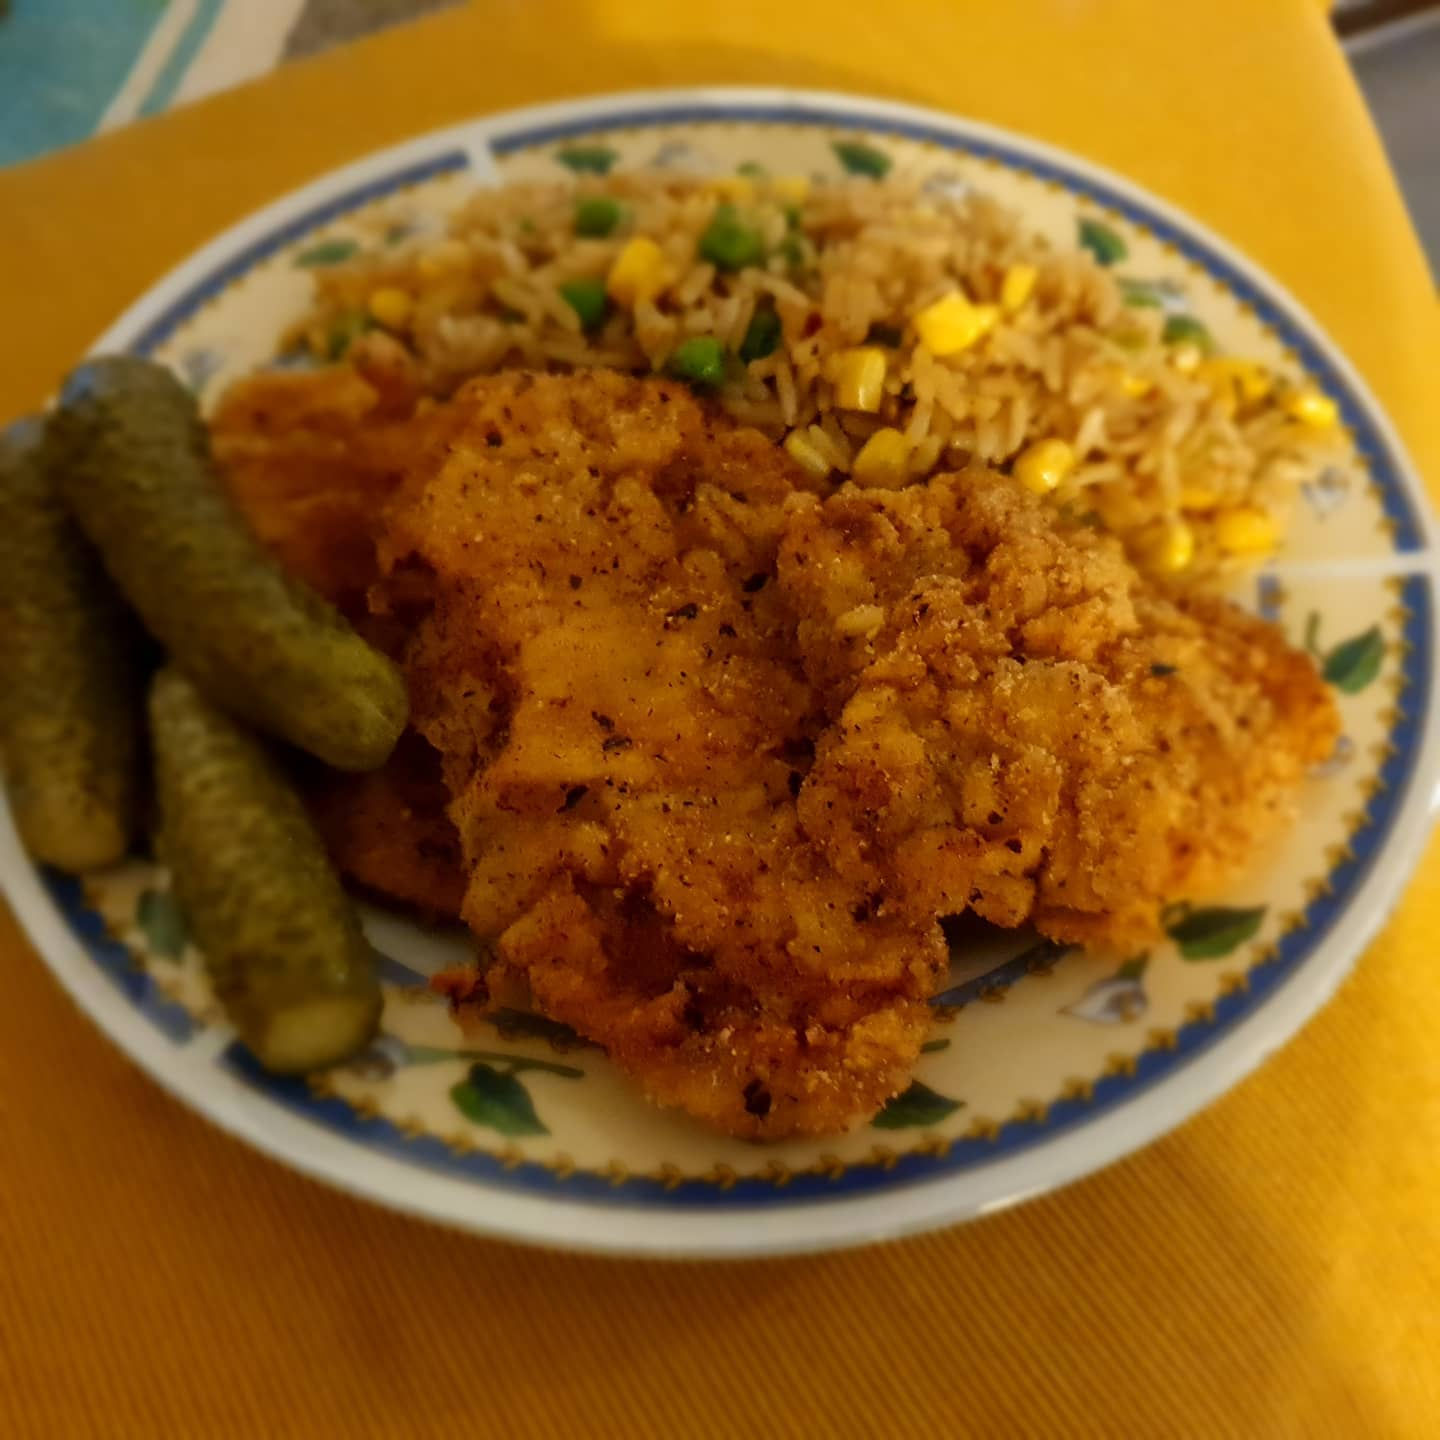 Prok breadcrumb snitzel night with a butter, corn and peas